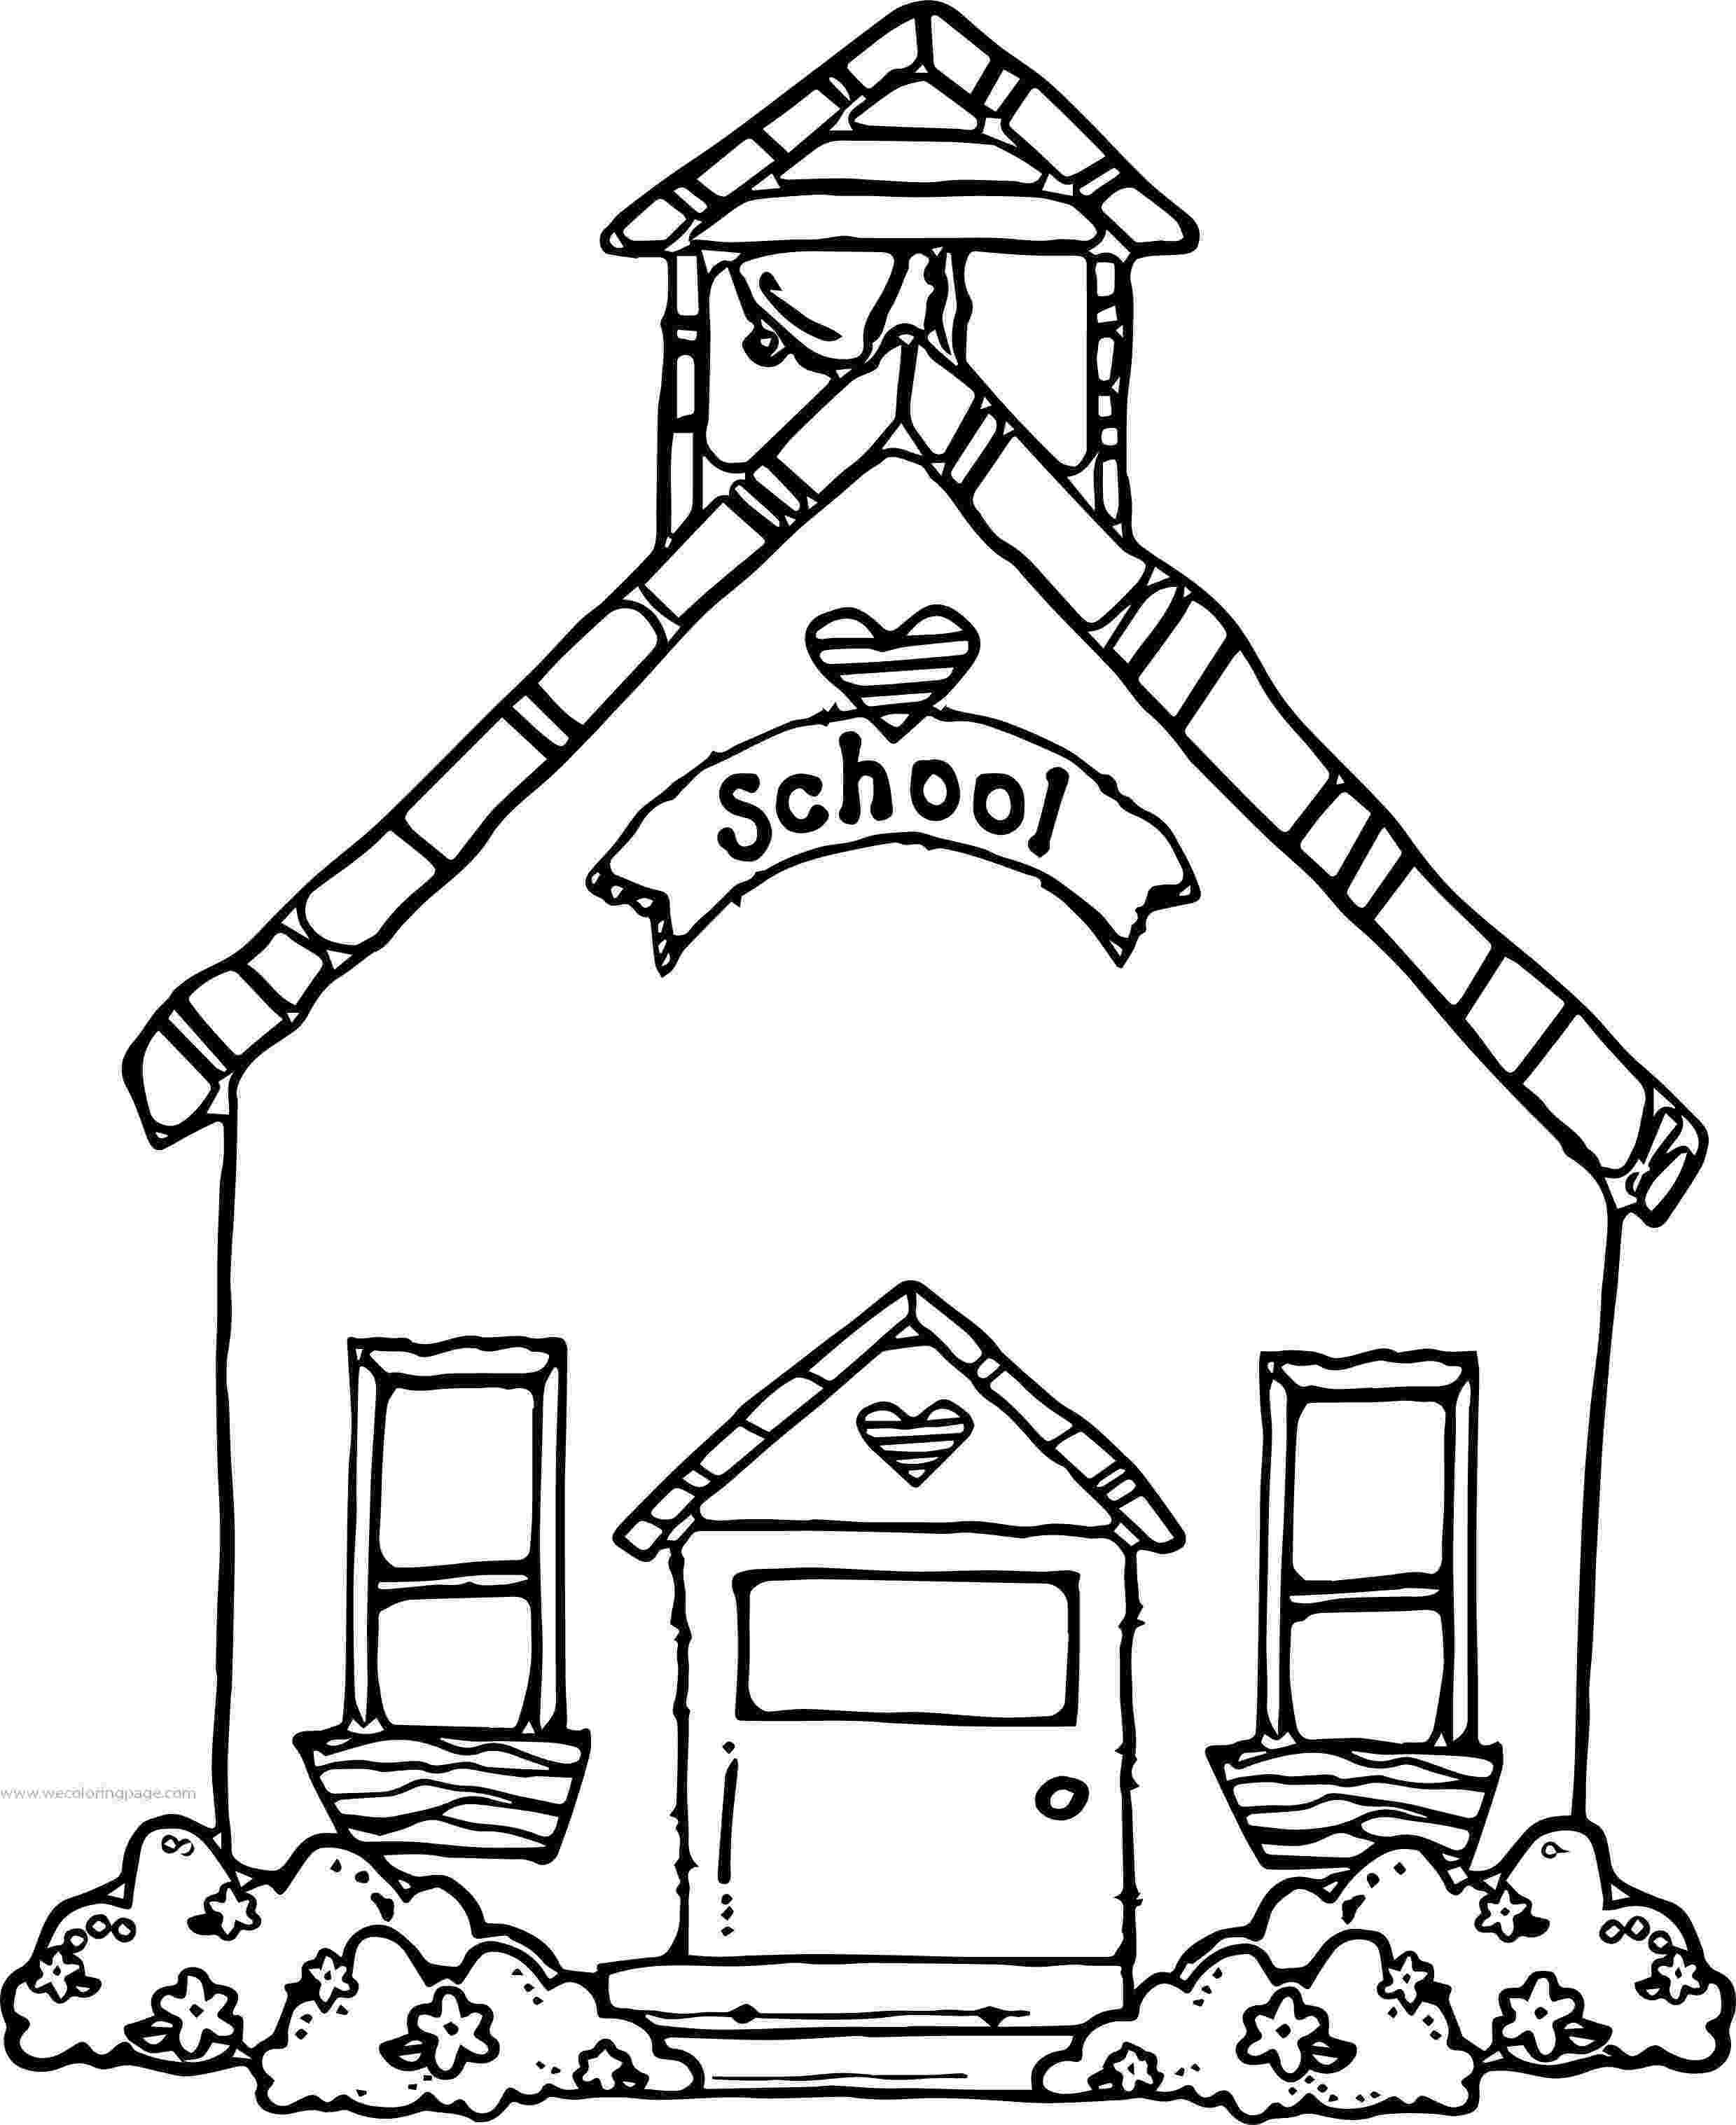 school building coloring pages back to school school house coloring page coloring building school pages